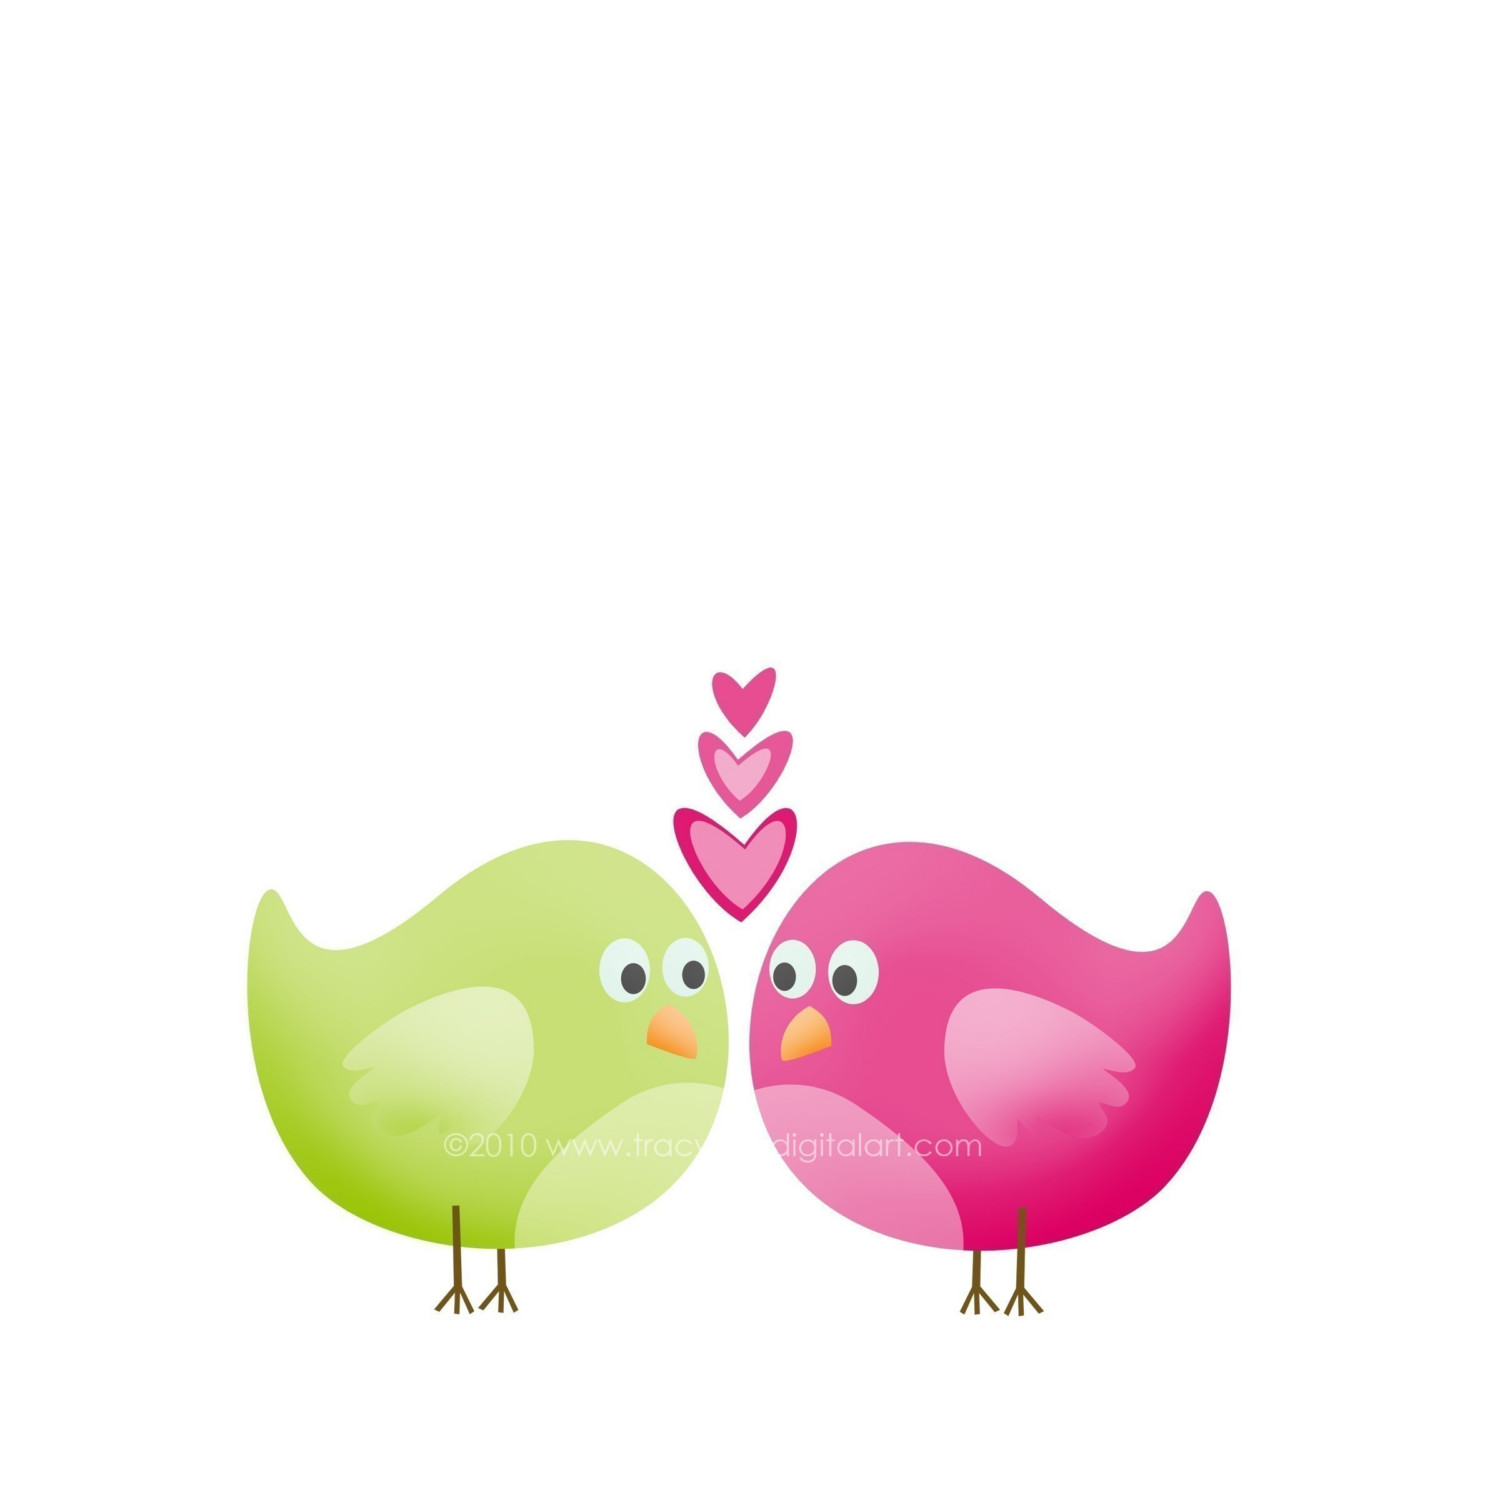 love birds clipart - Love Birds Clipart